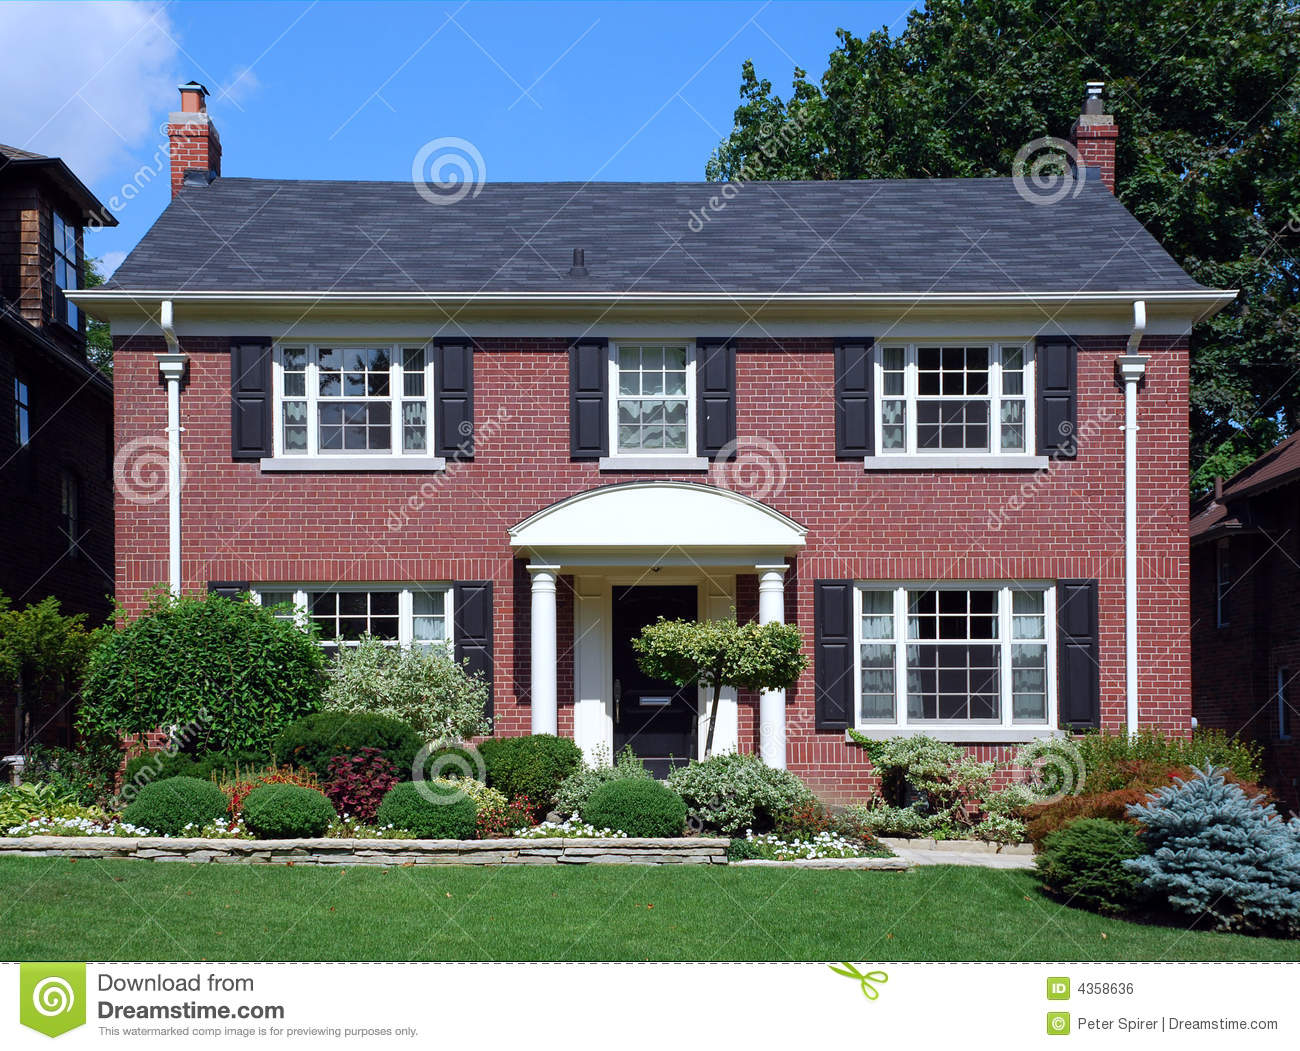 Suburban house with shutters royalty free stock image for Simple american house